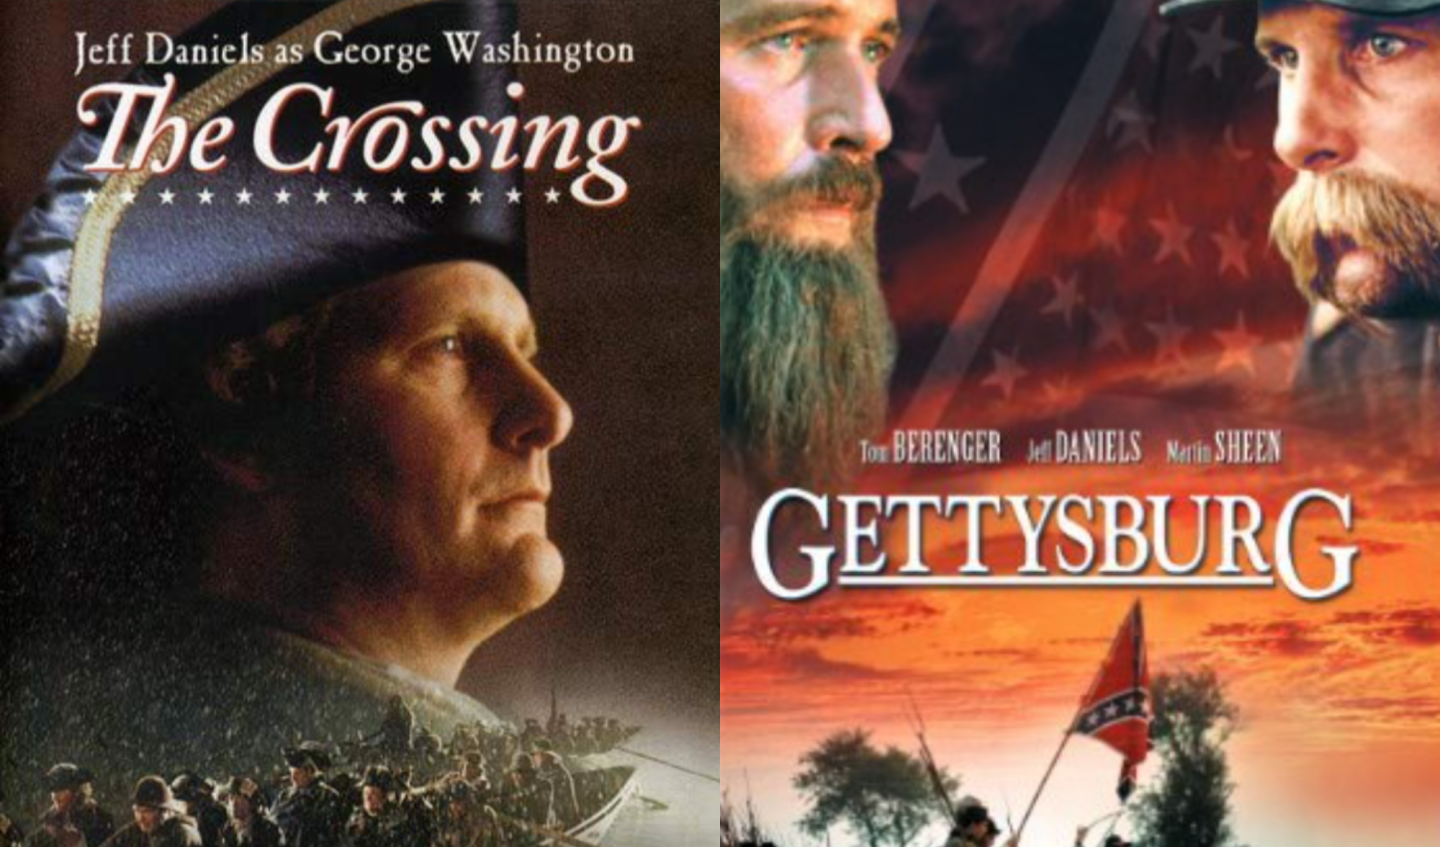 Movie posters for The Crossing and Gettysburg to illustrate blog post on George Washington and Abraham Lincoln